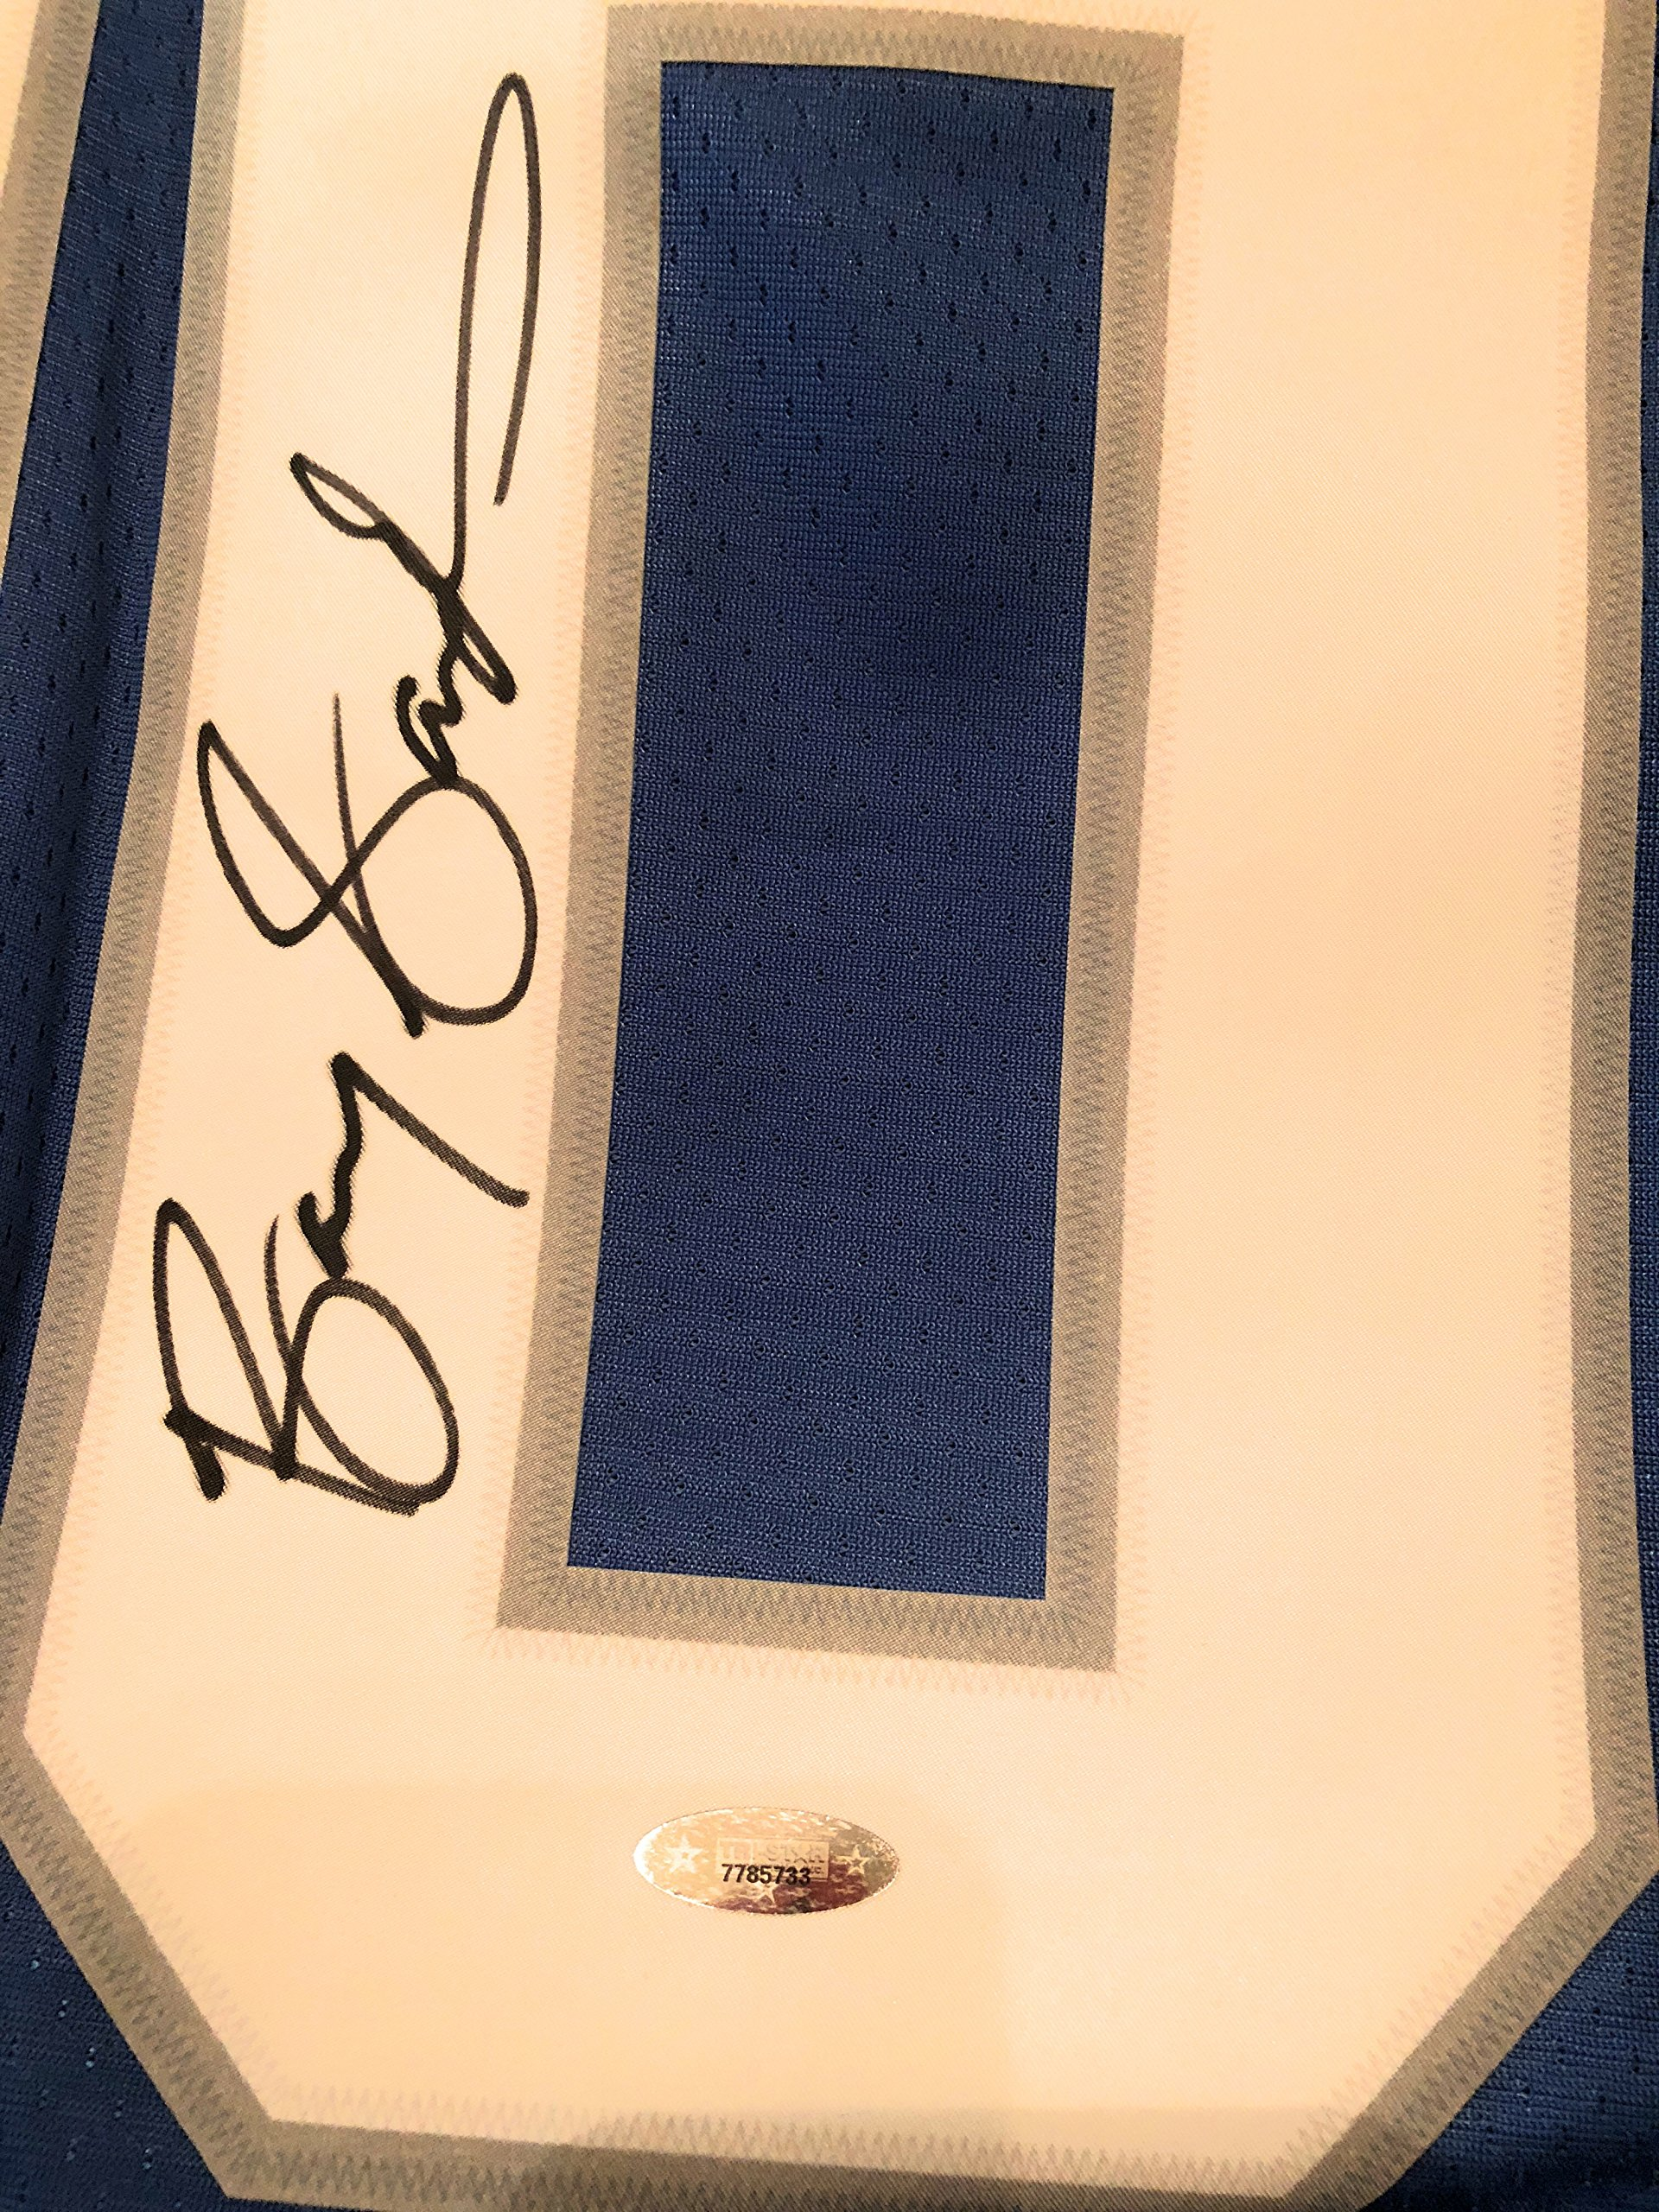 Barry Sanders Detriot Lions Signed Autograph Licensed NFL Jersey Tristar Authentic Certified